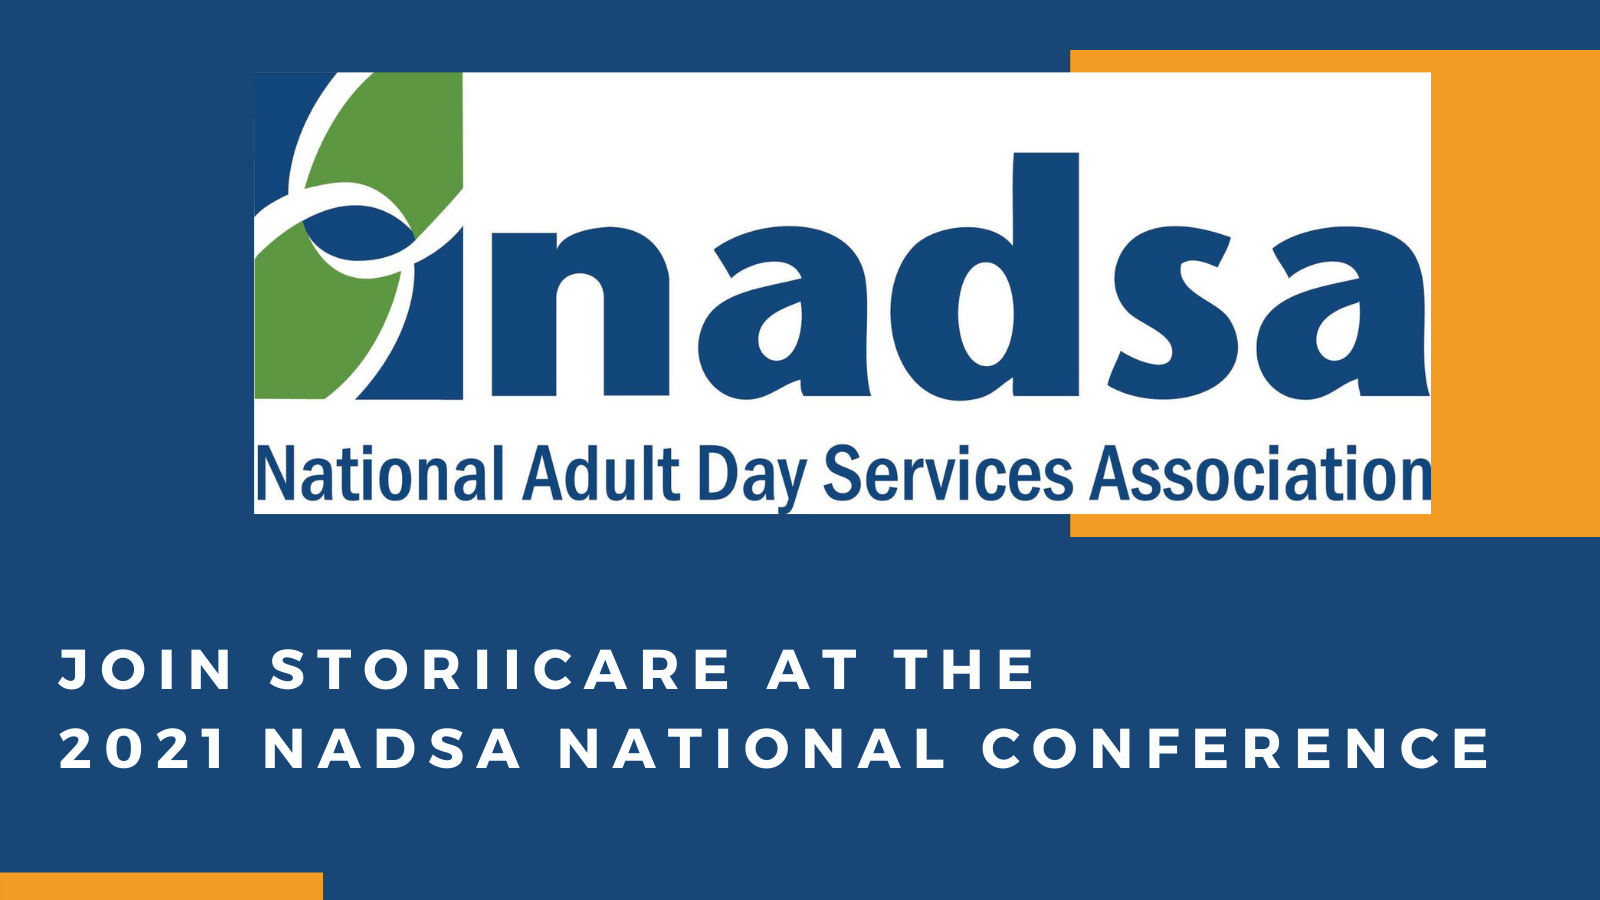 See You at the 2021 NADSA National Conference!